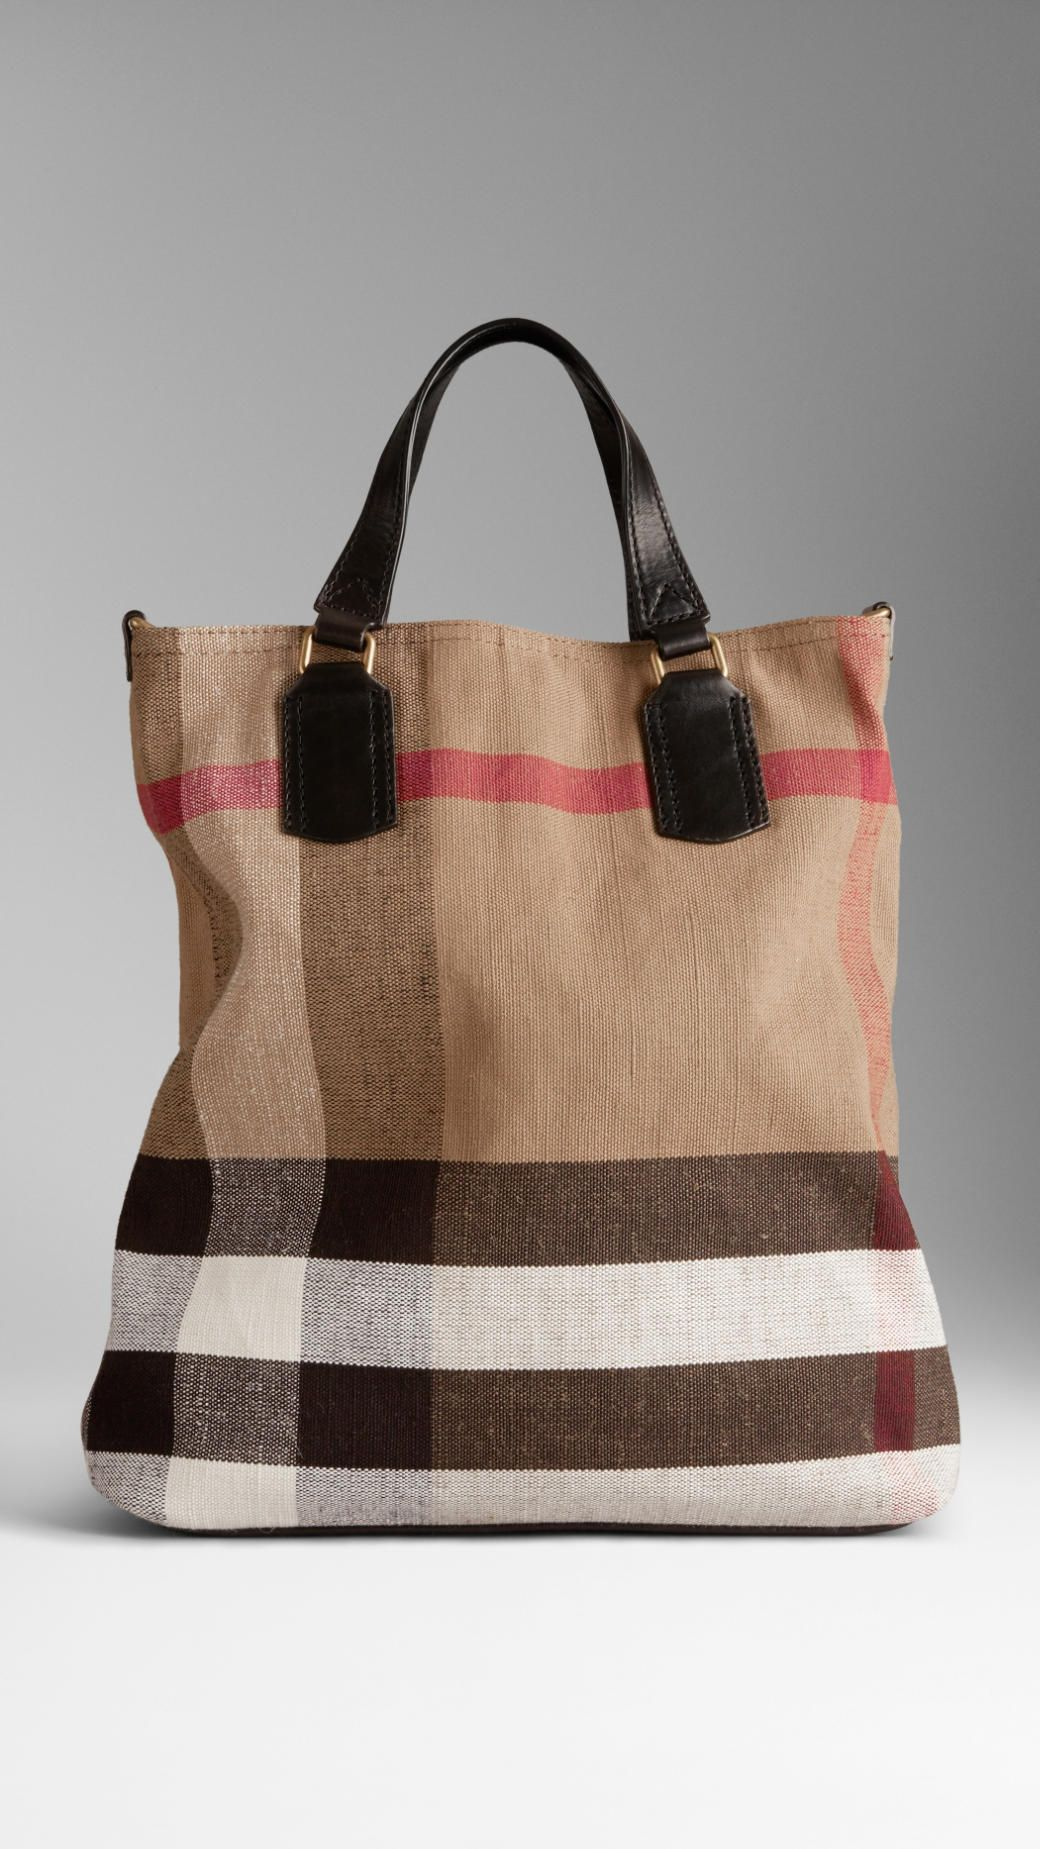 0a6d092af854 Burberry Medium Canvas Check Tote Bag